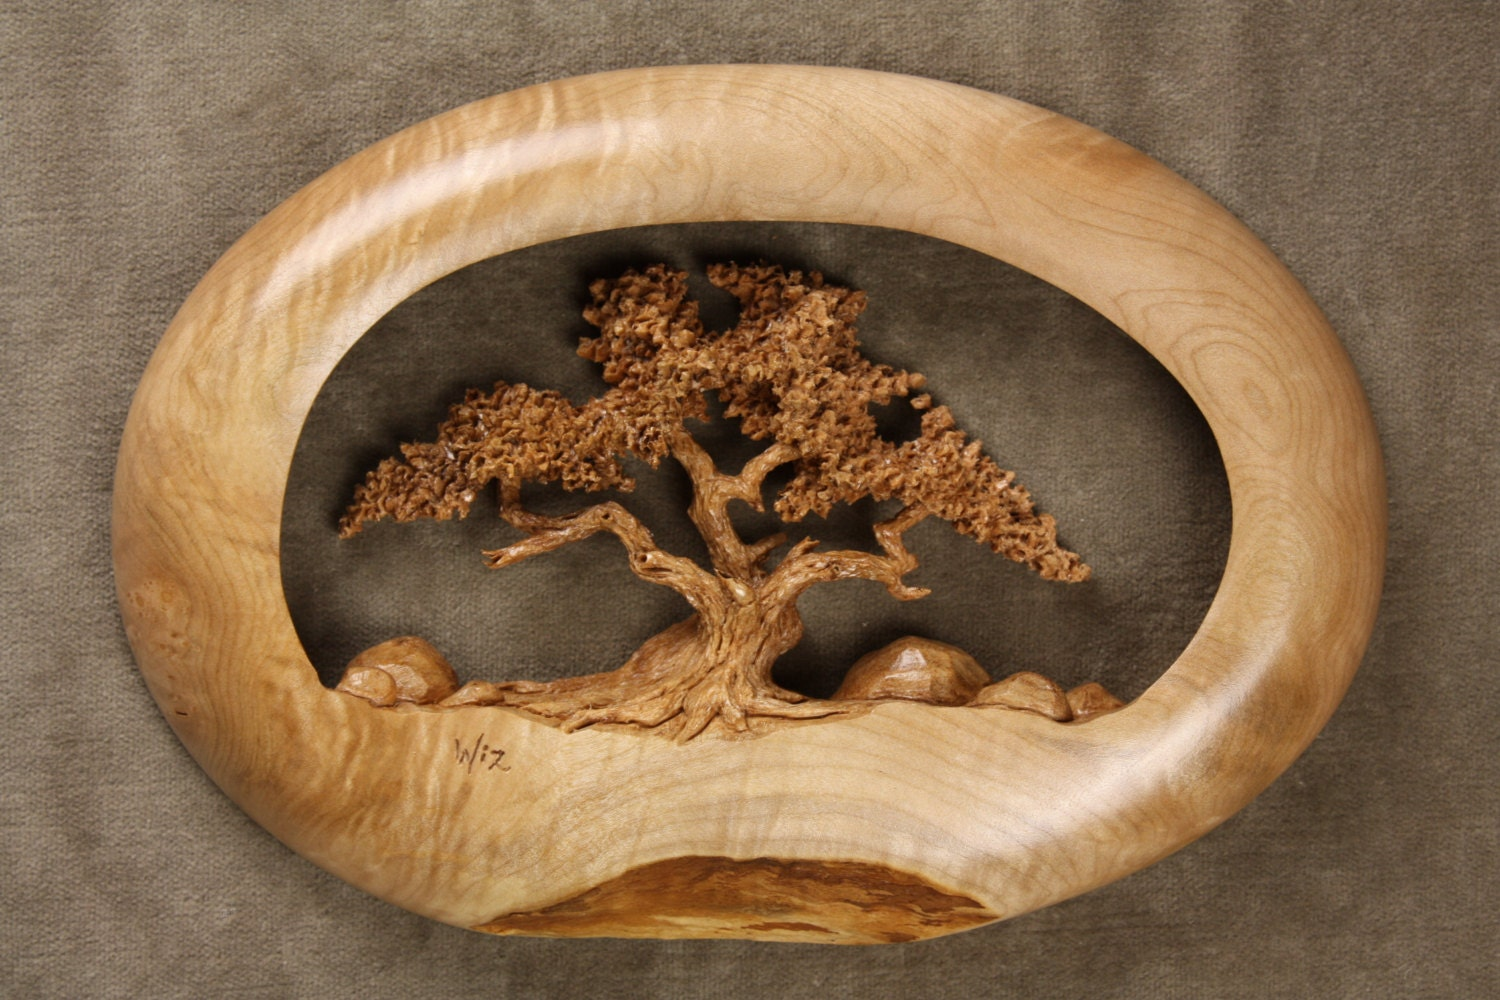 On hold for meagan gift oak tree wood by treewizwoodcarvings